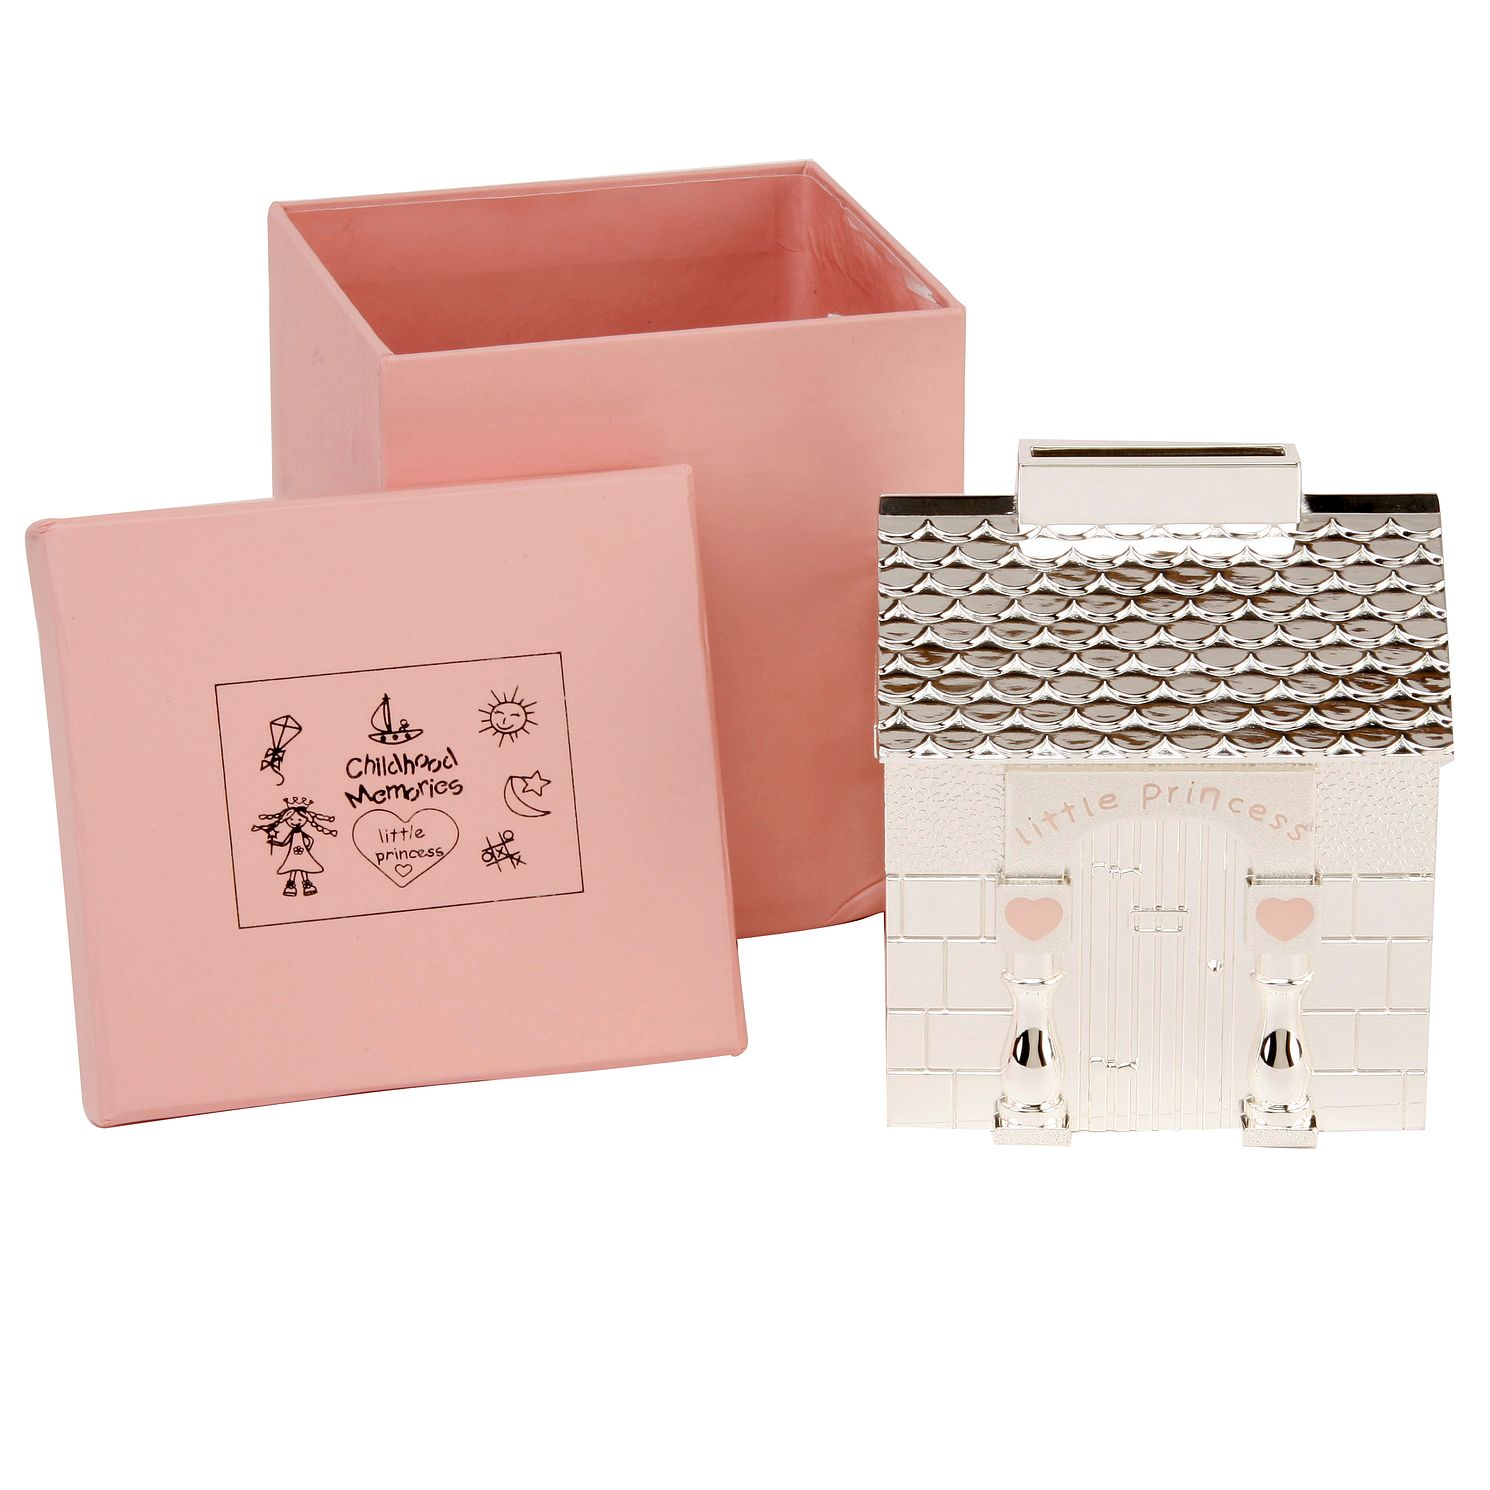 Little Princess Exclusive Wendy House Moneybox | H.Samuel